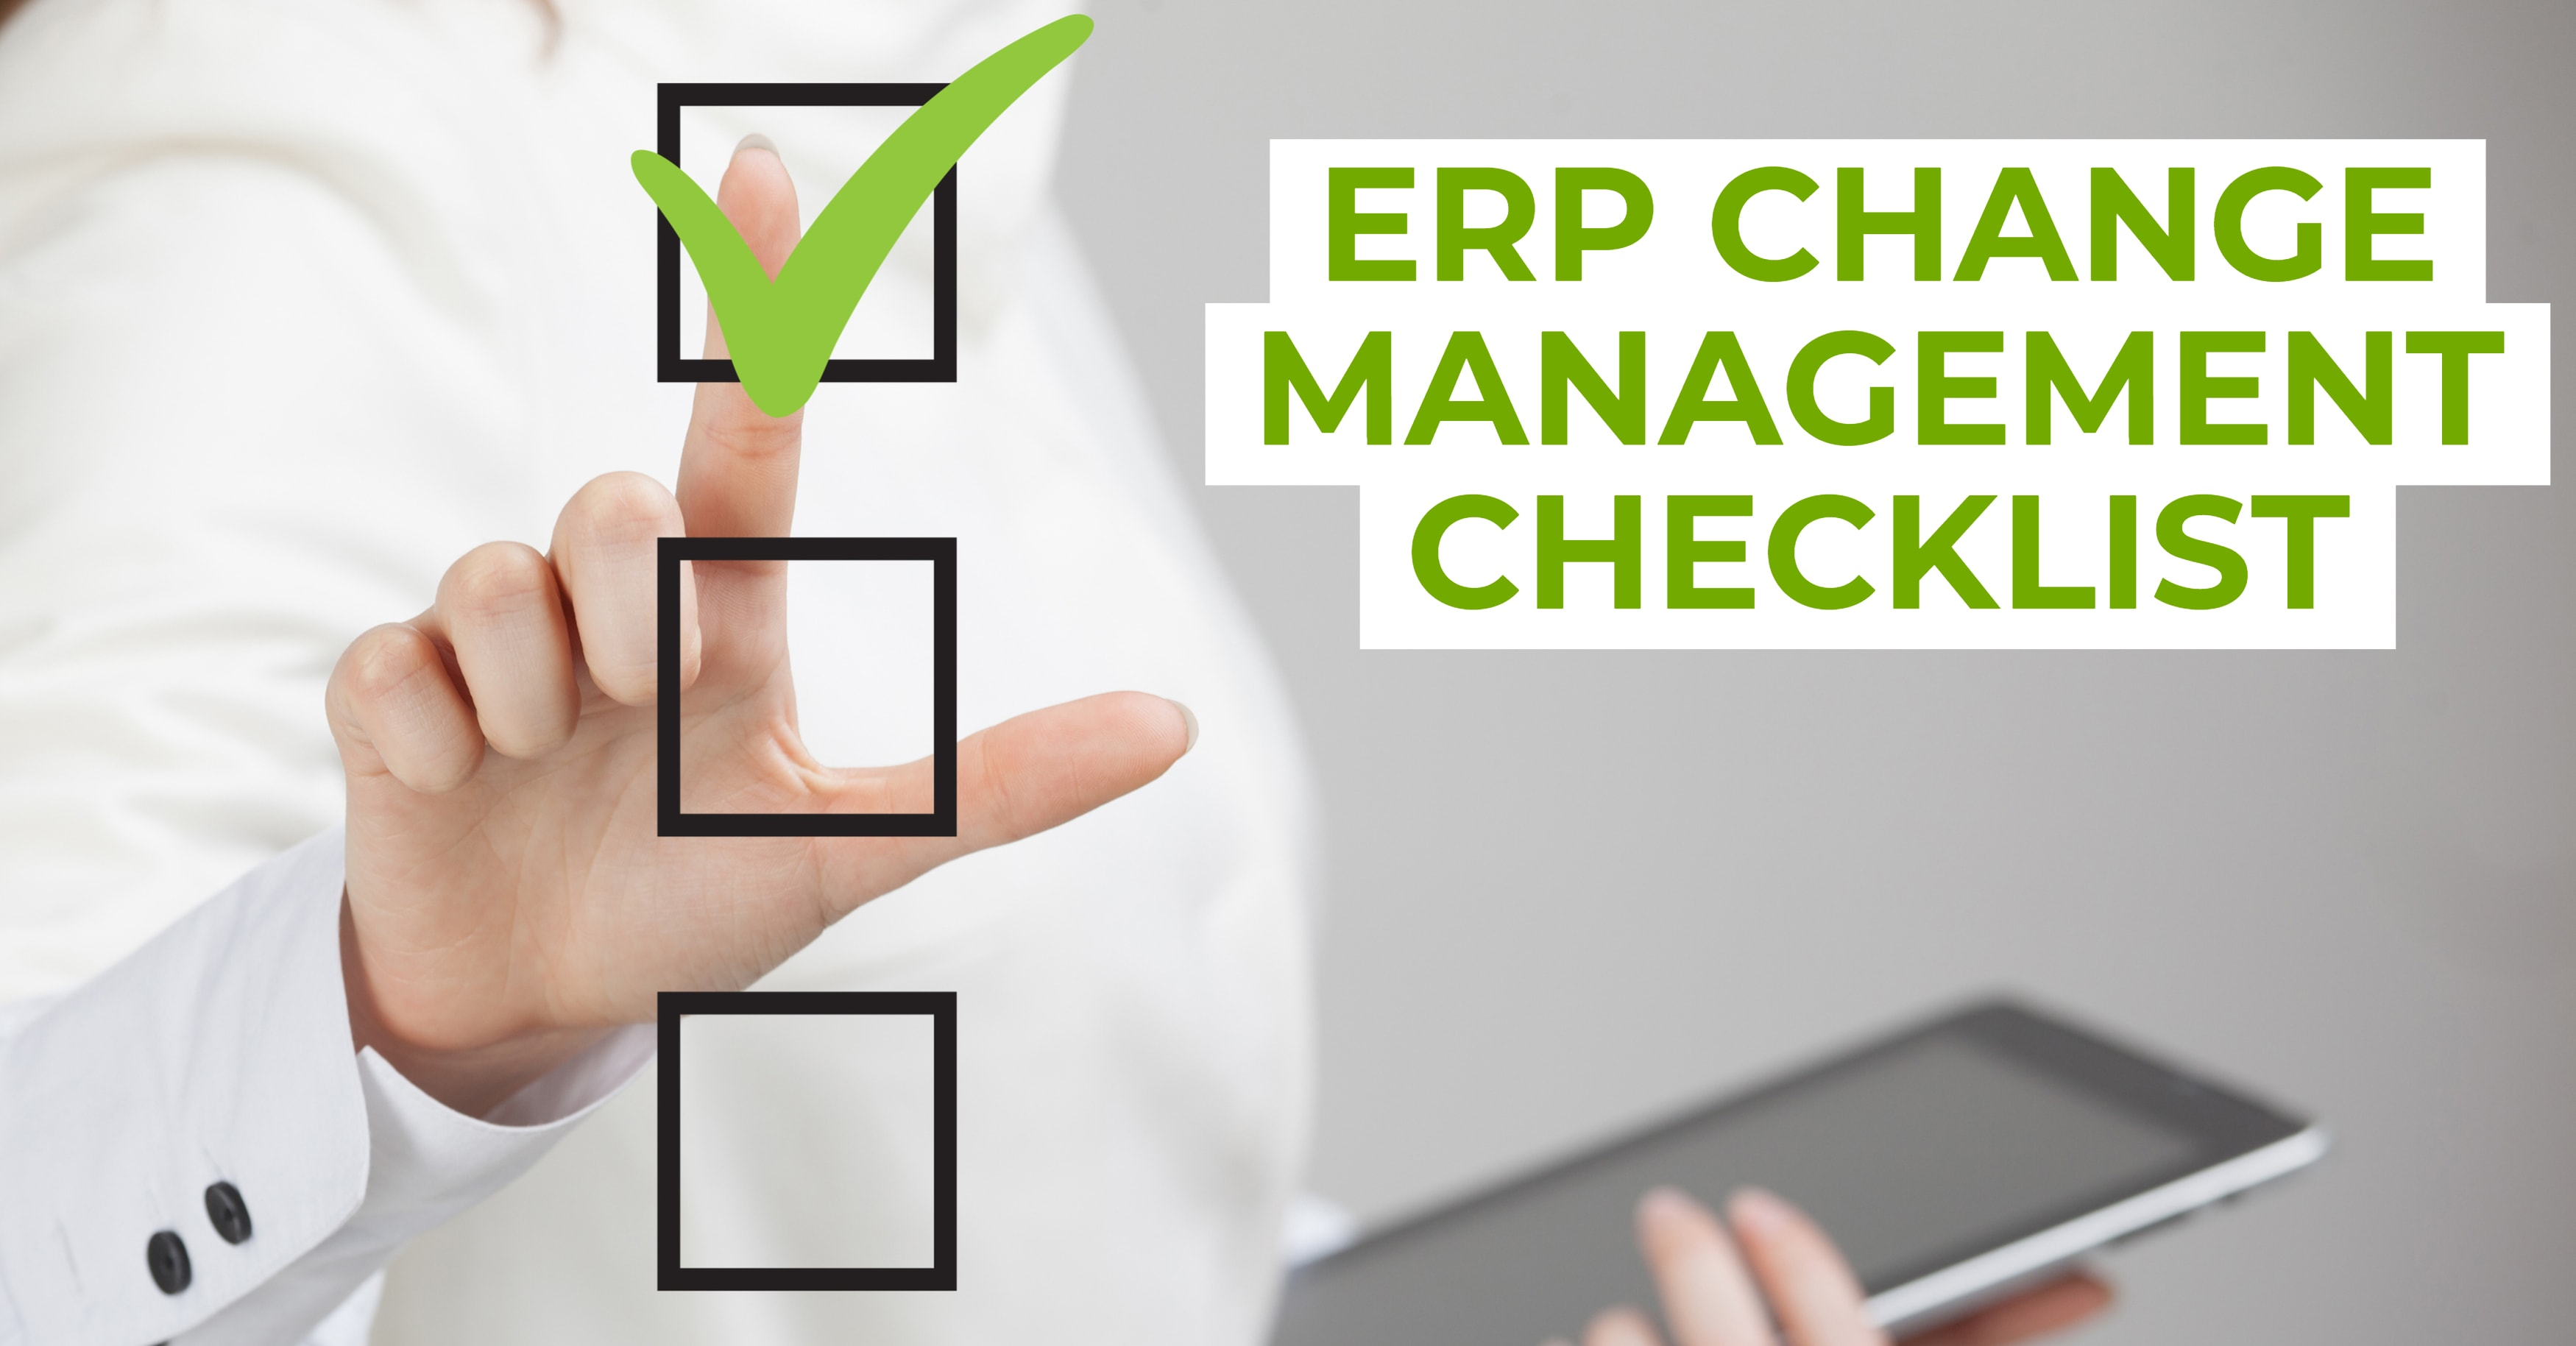 10 Essentials for ERP Change Management